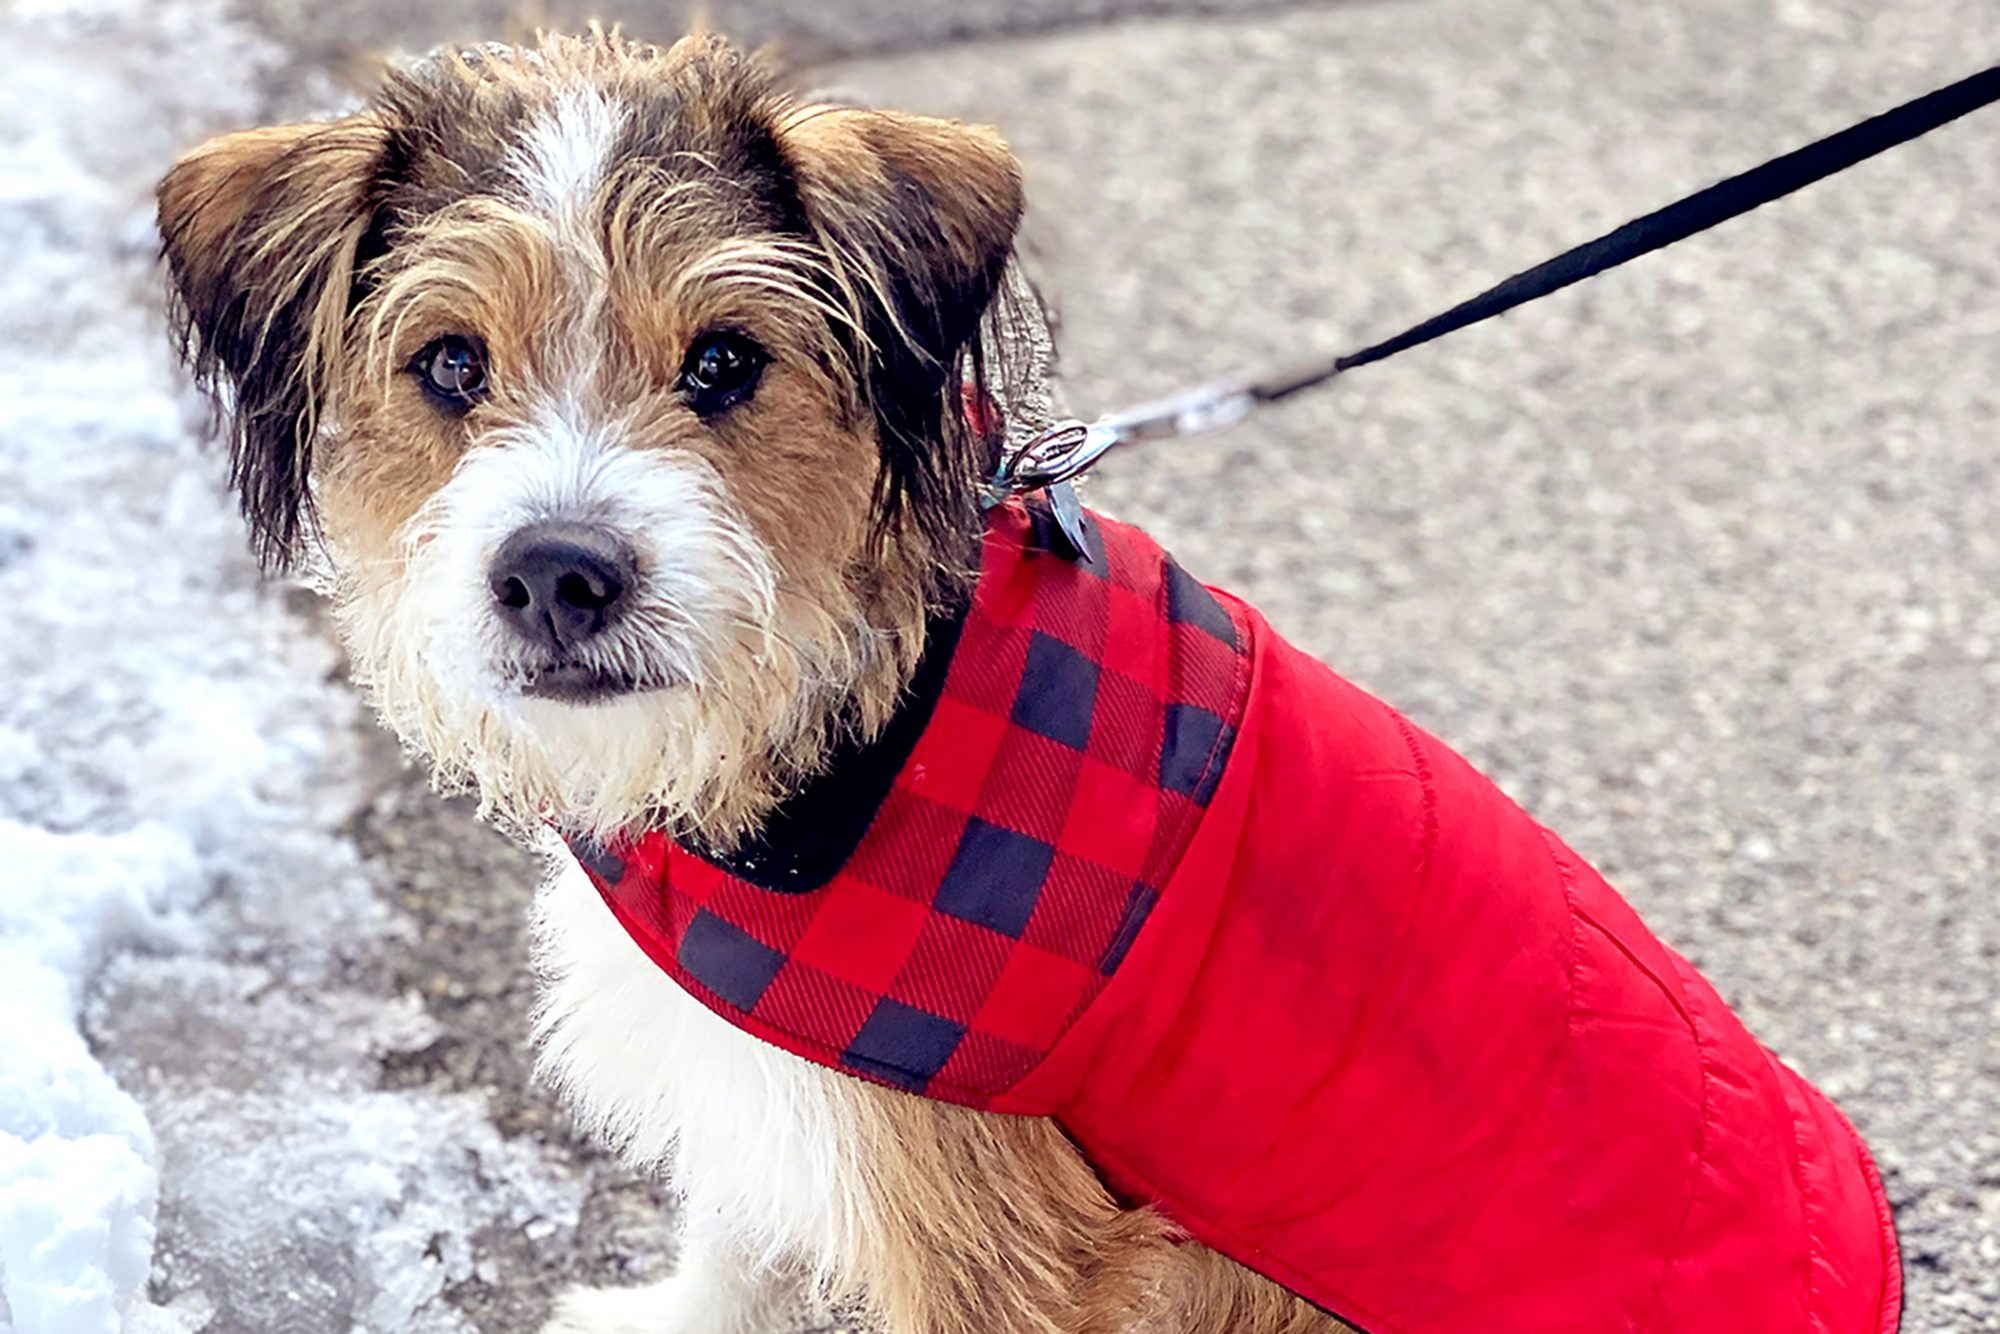 Fluffy small dog wears red coat on snowy sidewalk